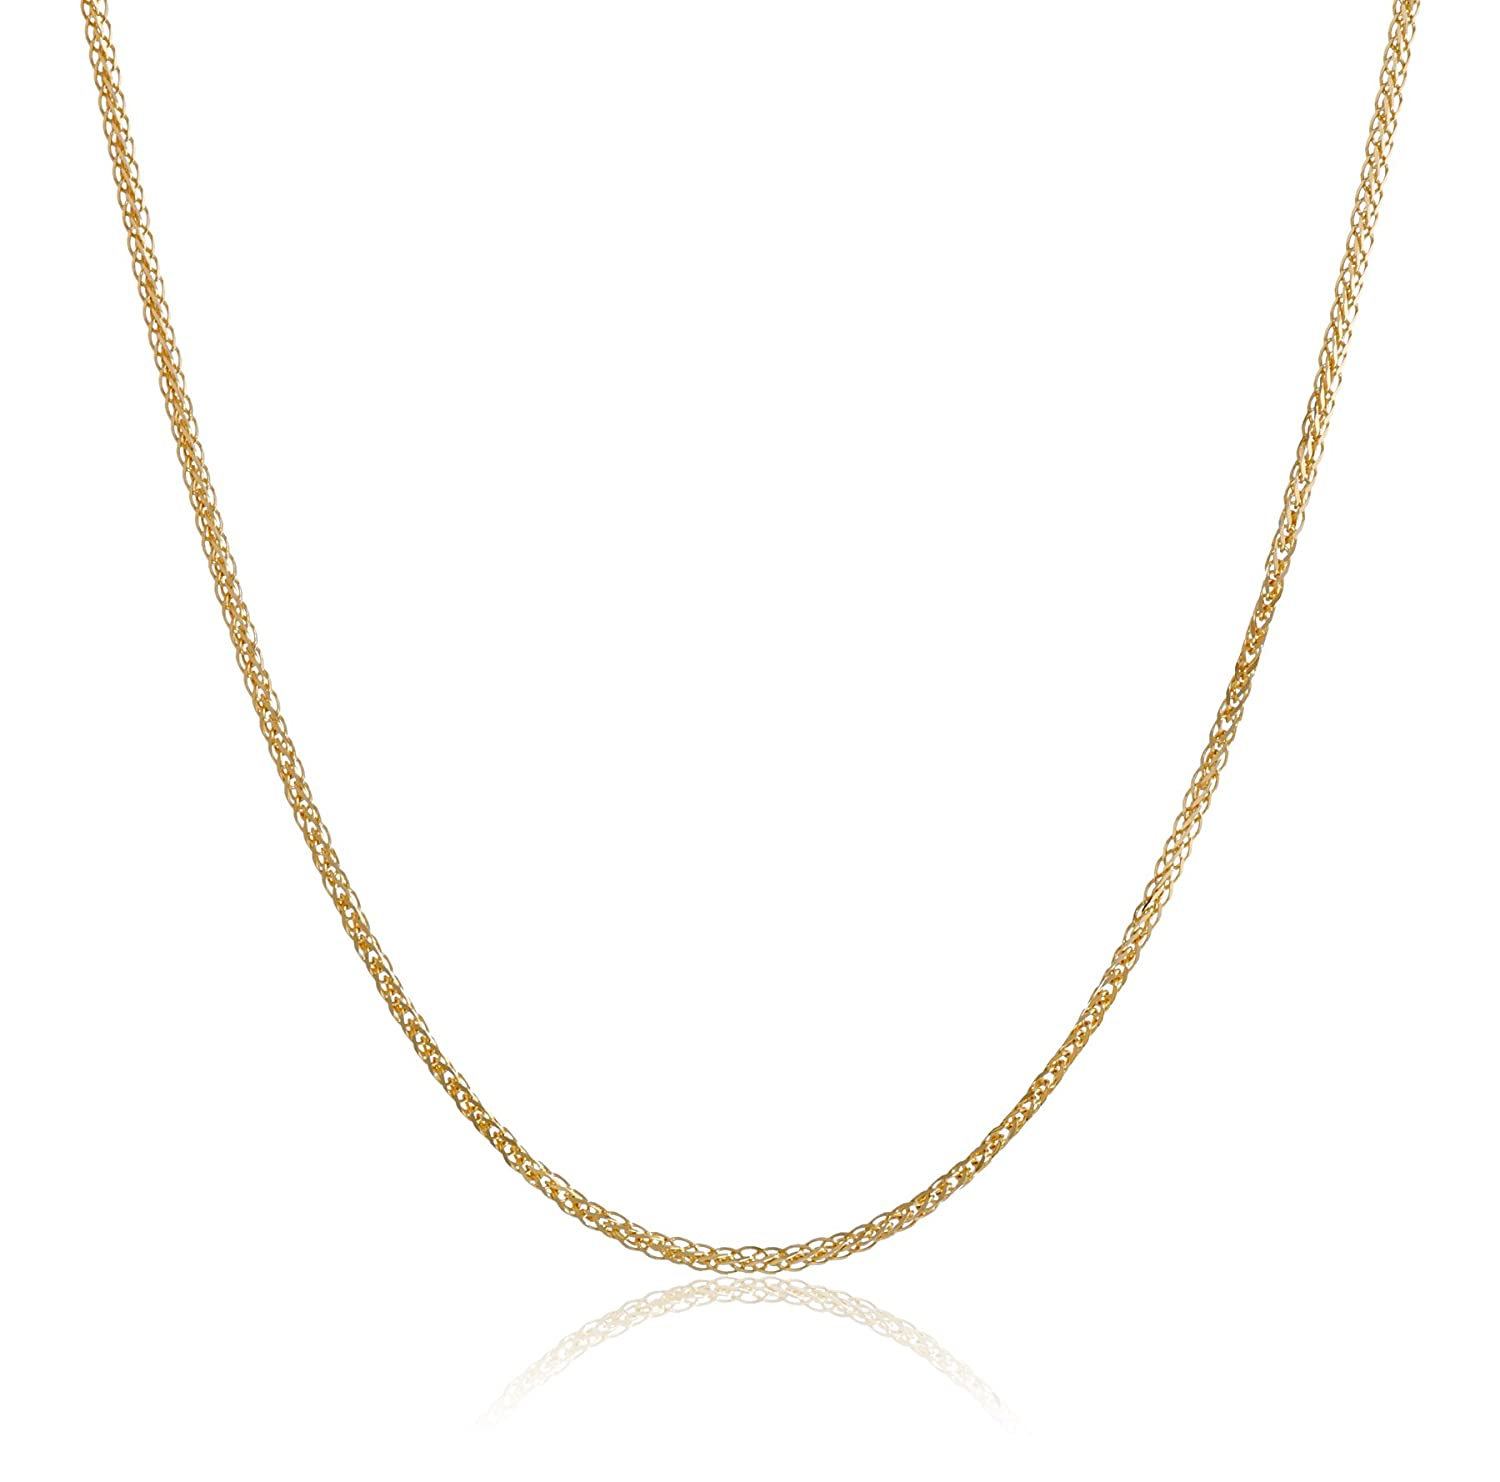 alkemistry zo the diamond zoe necklace women lyst chains s jewelry gold and chicco yellow metallic